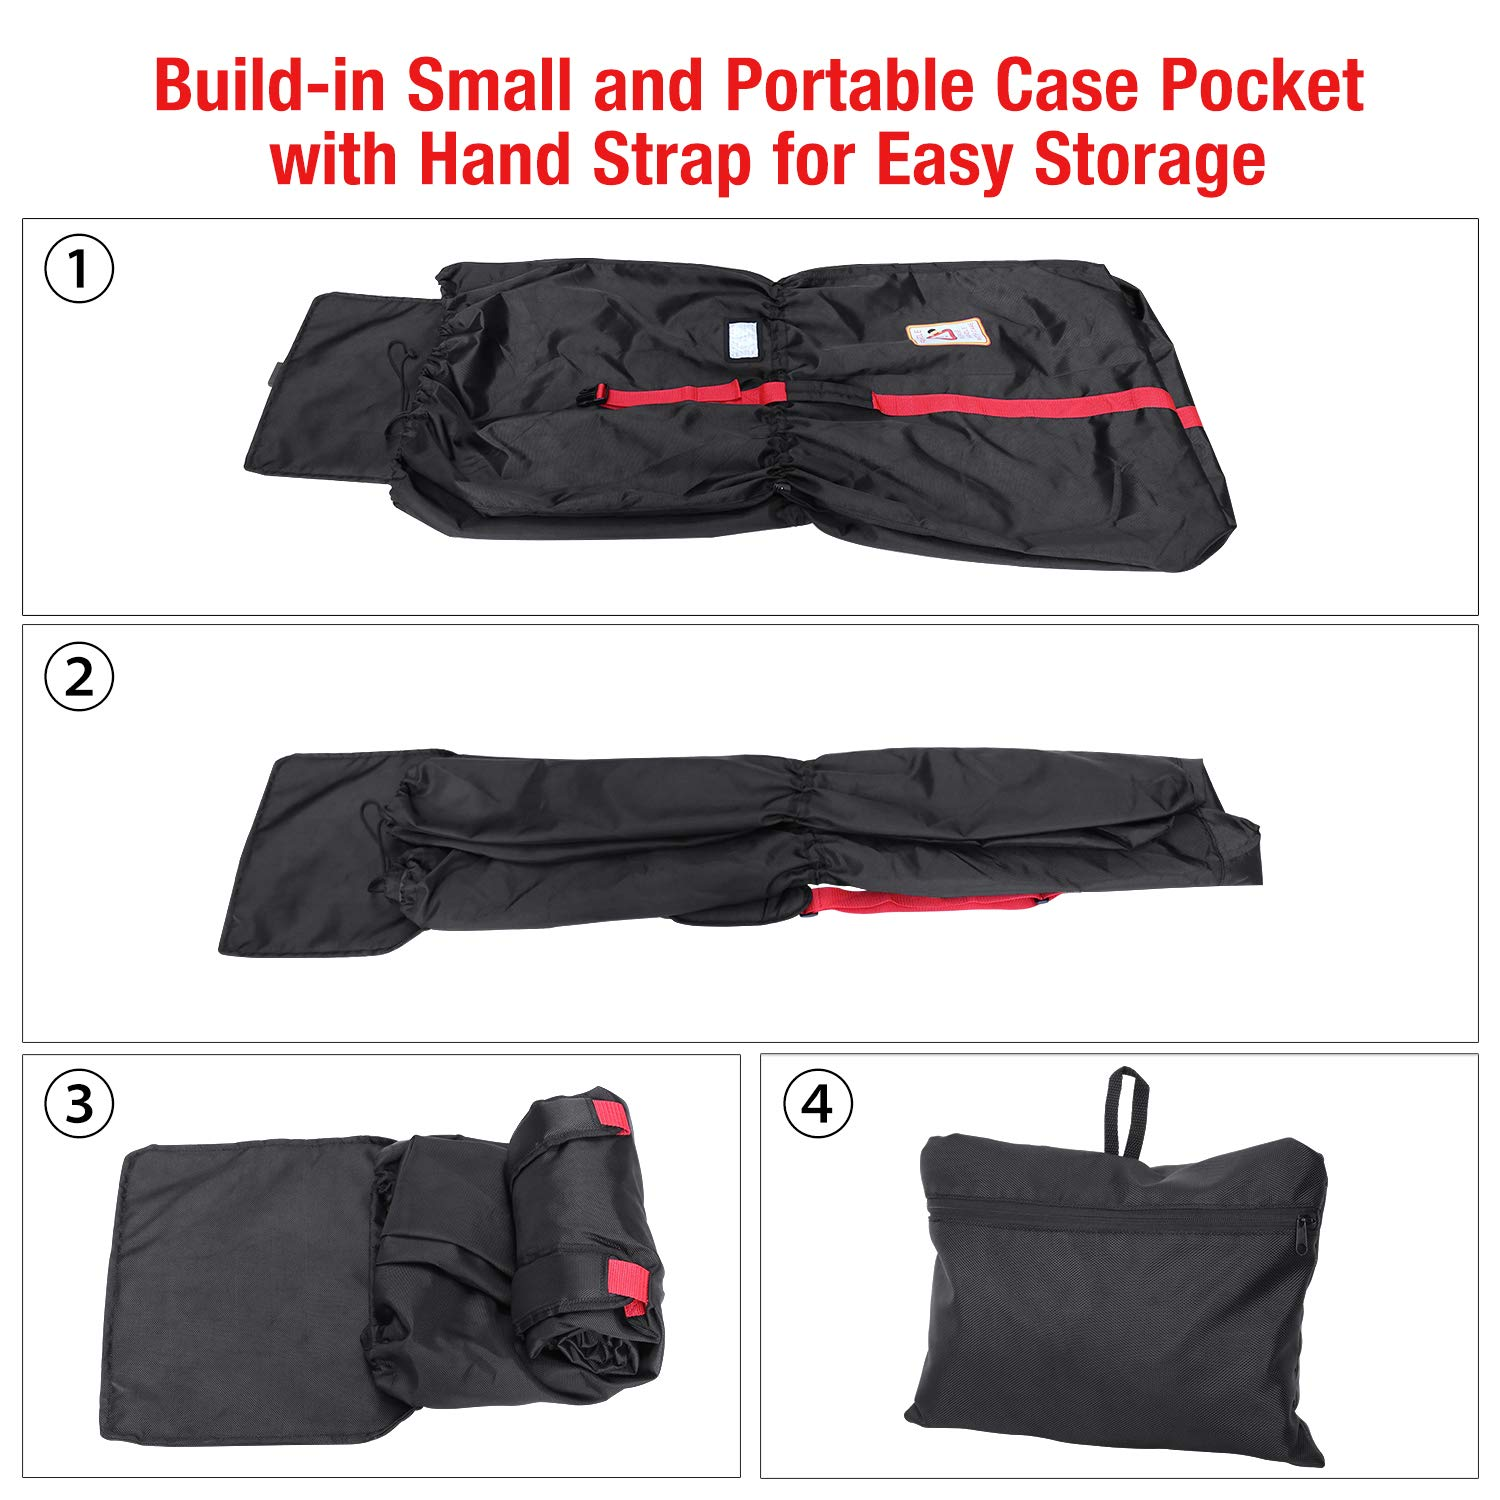 Modokit 1680D Durable Stroller Bag Airplane Travel Gate Check Bag Stroller  Storage Pouch 106c49256c56f